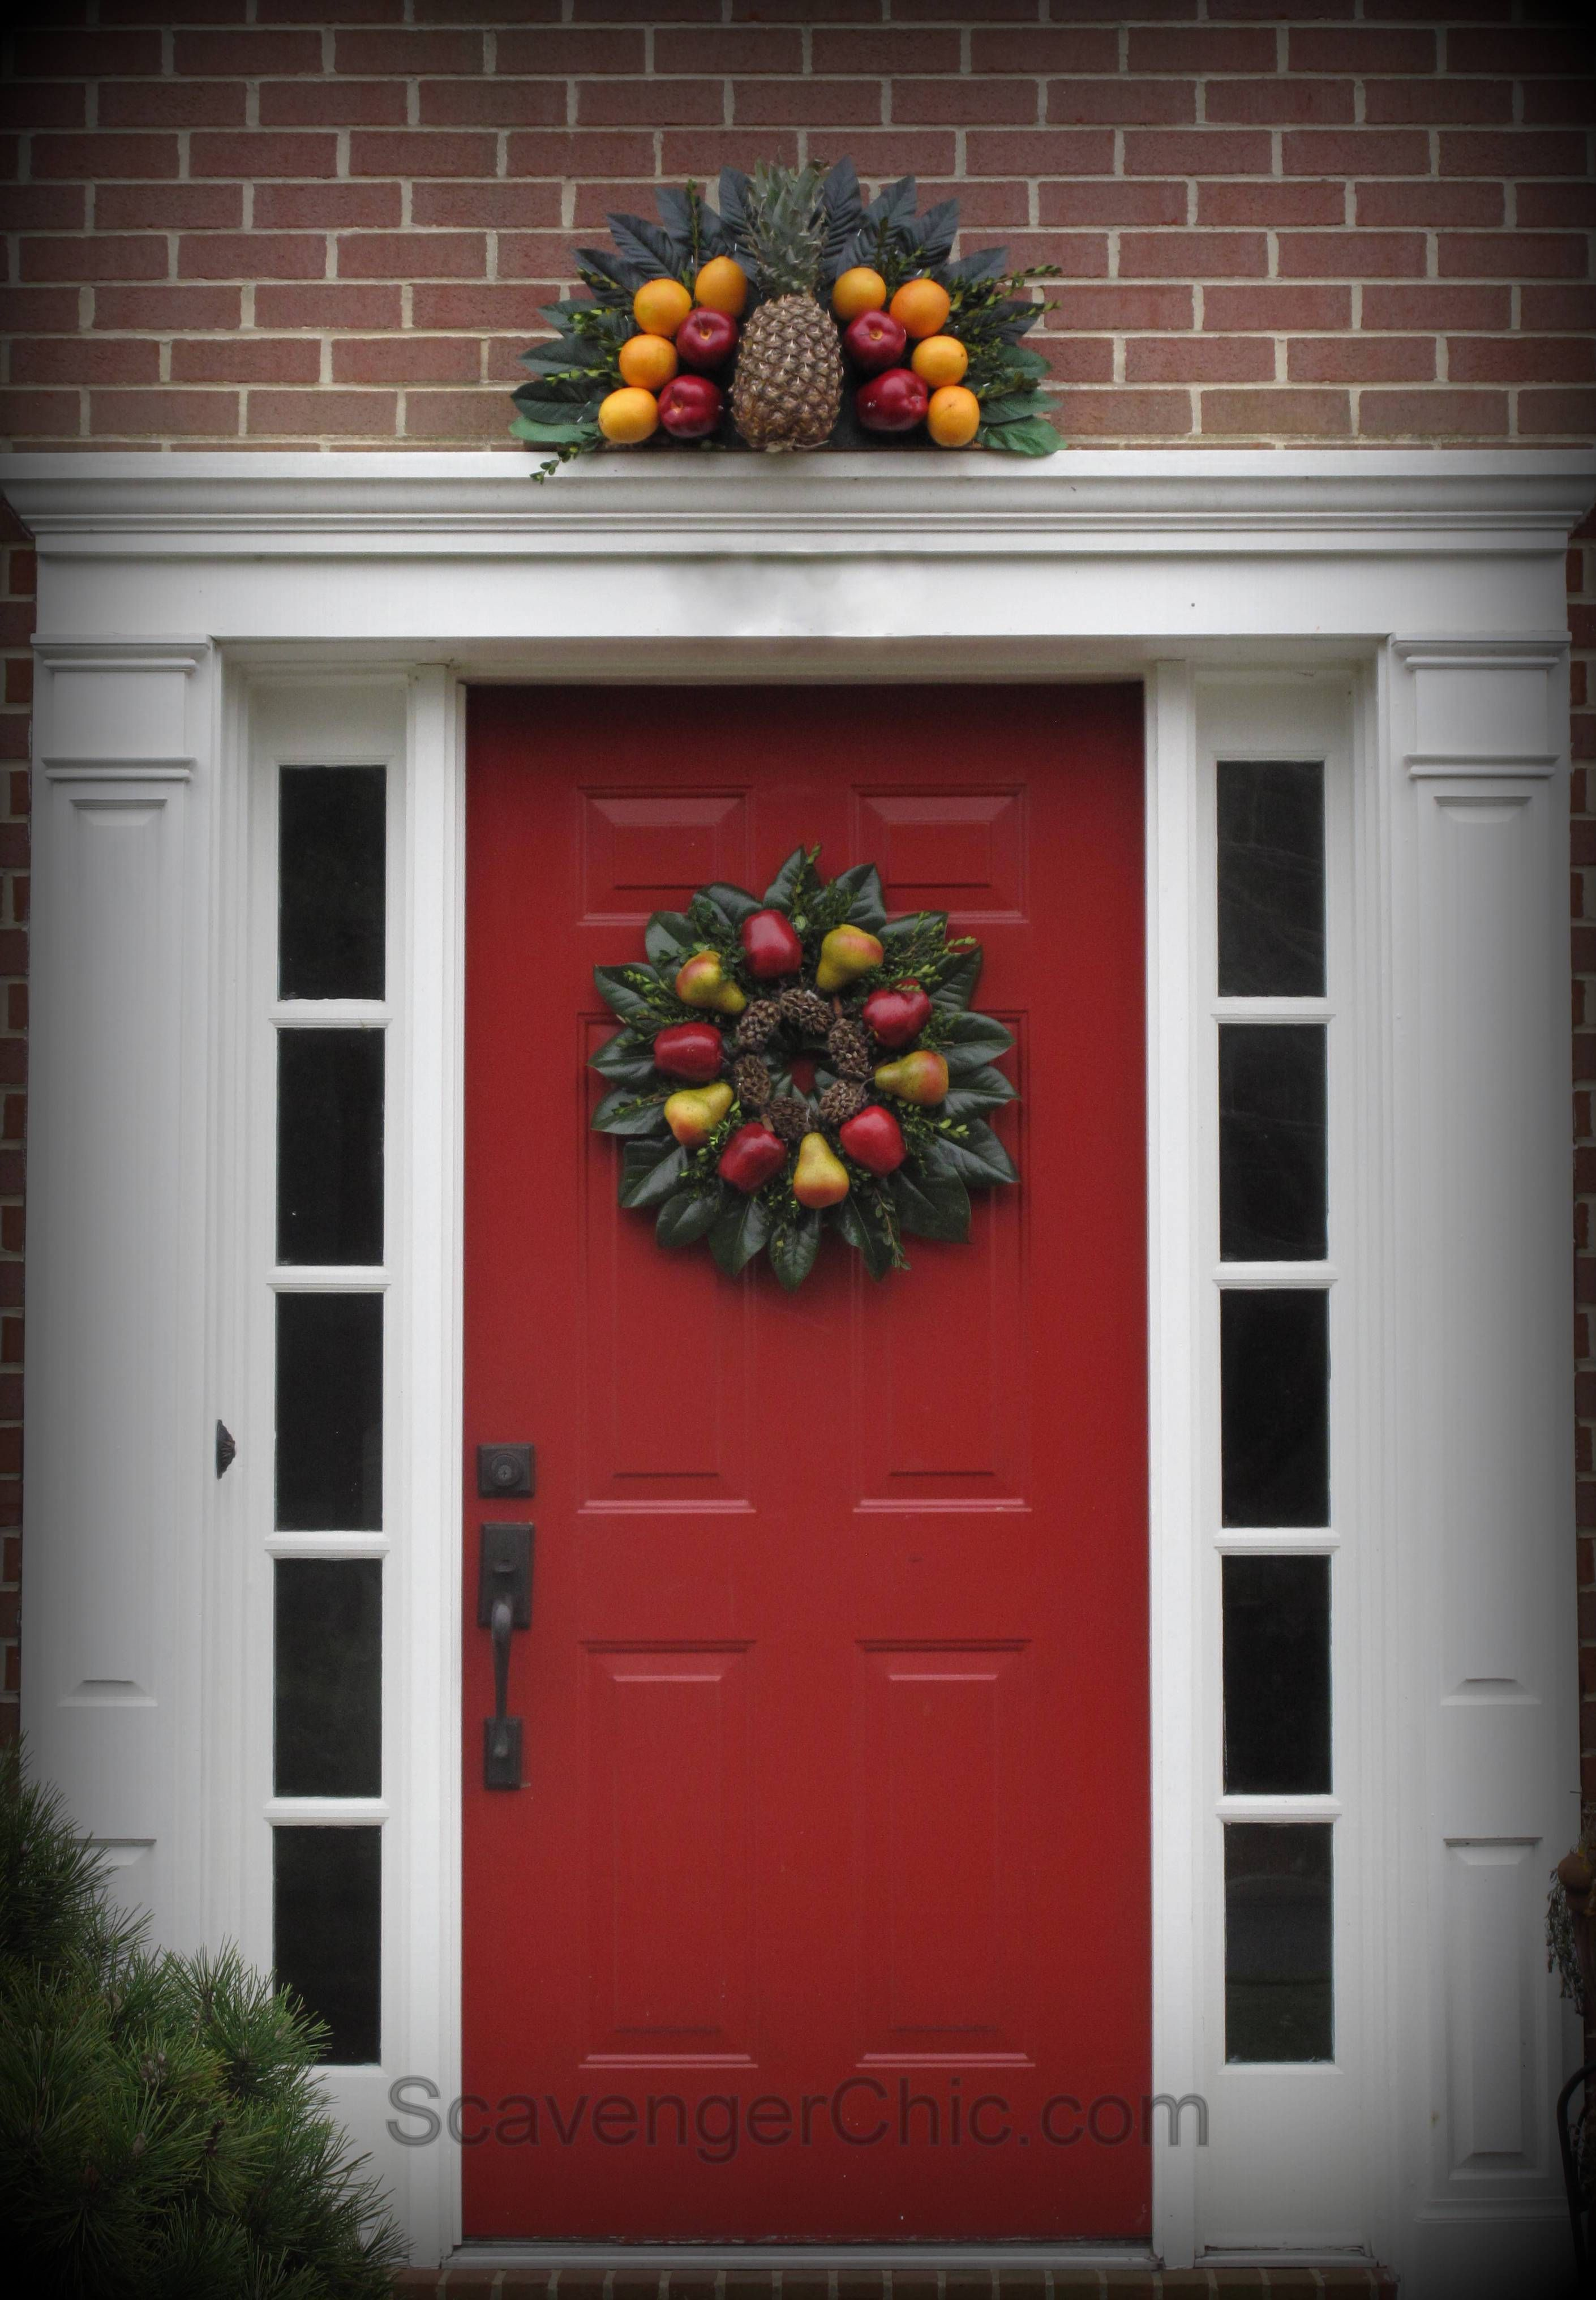 The other day I showed you how to make a Williamsburg inspired fruit wreath. Well today I\u0027m back with his companion piece an over the door fruit fan. & Williamsburg Fruit Fan Over the door decoration Williamsburg ...